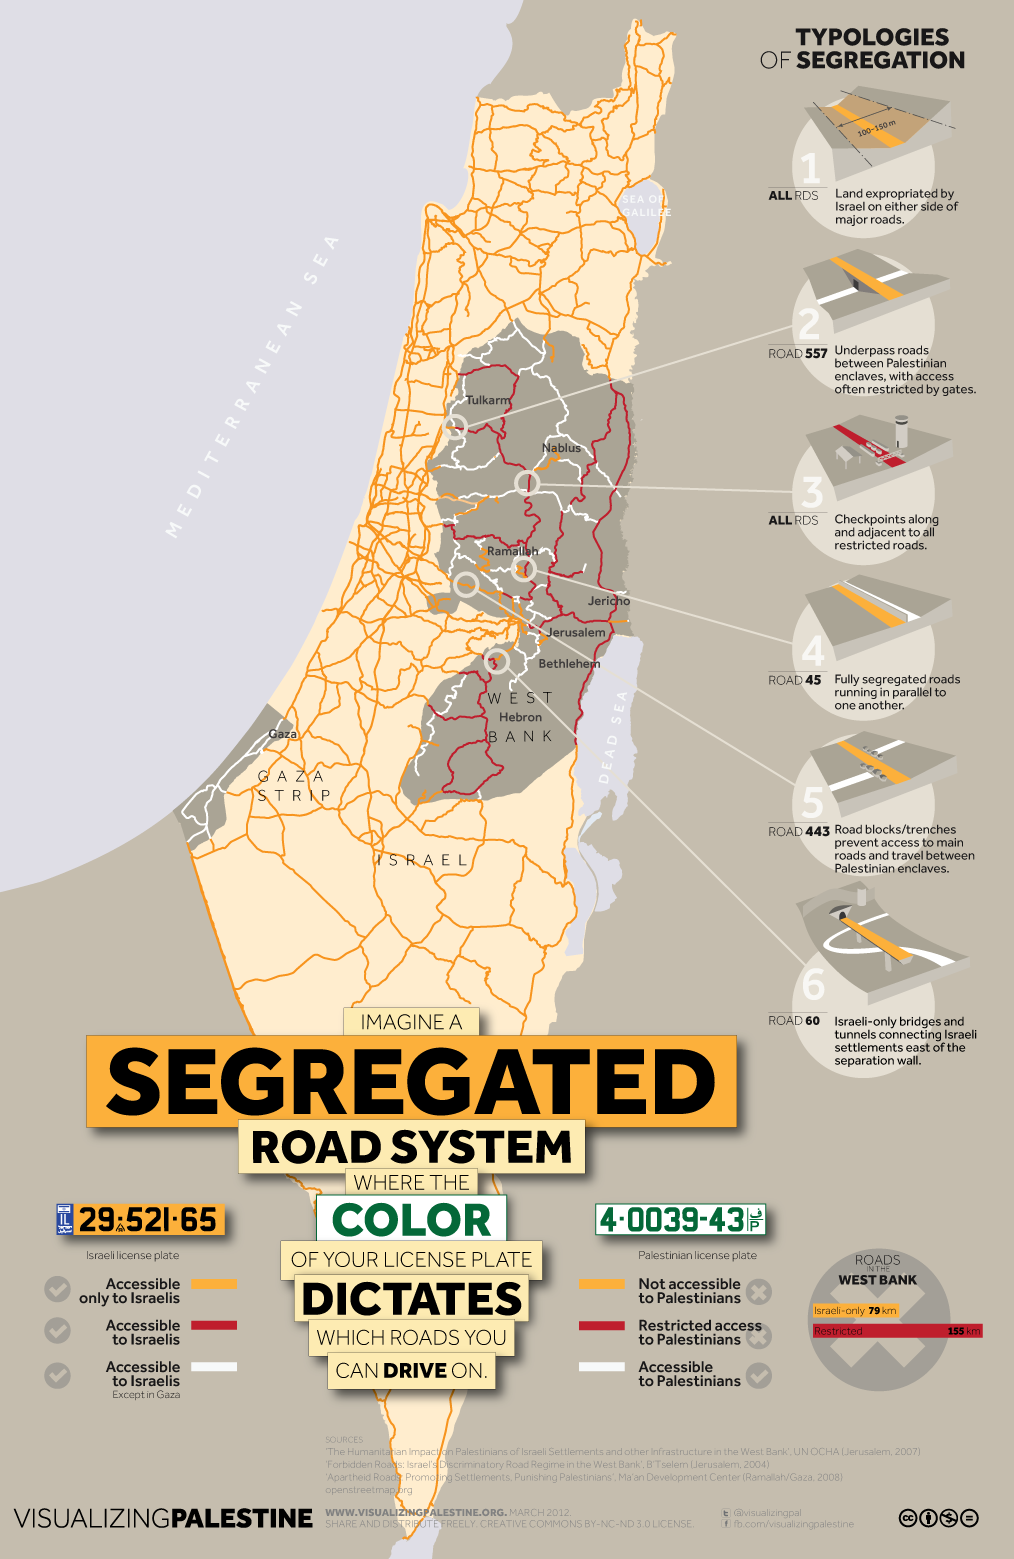 israels system of segregated roads in the occupied palestinian territories